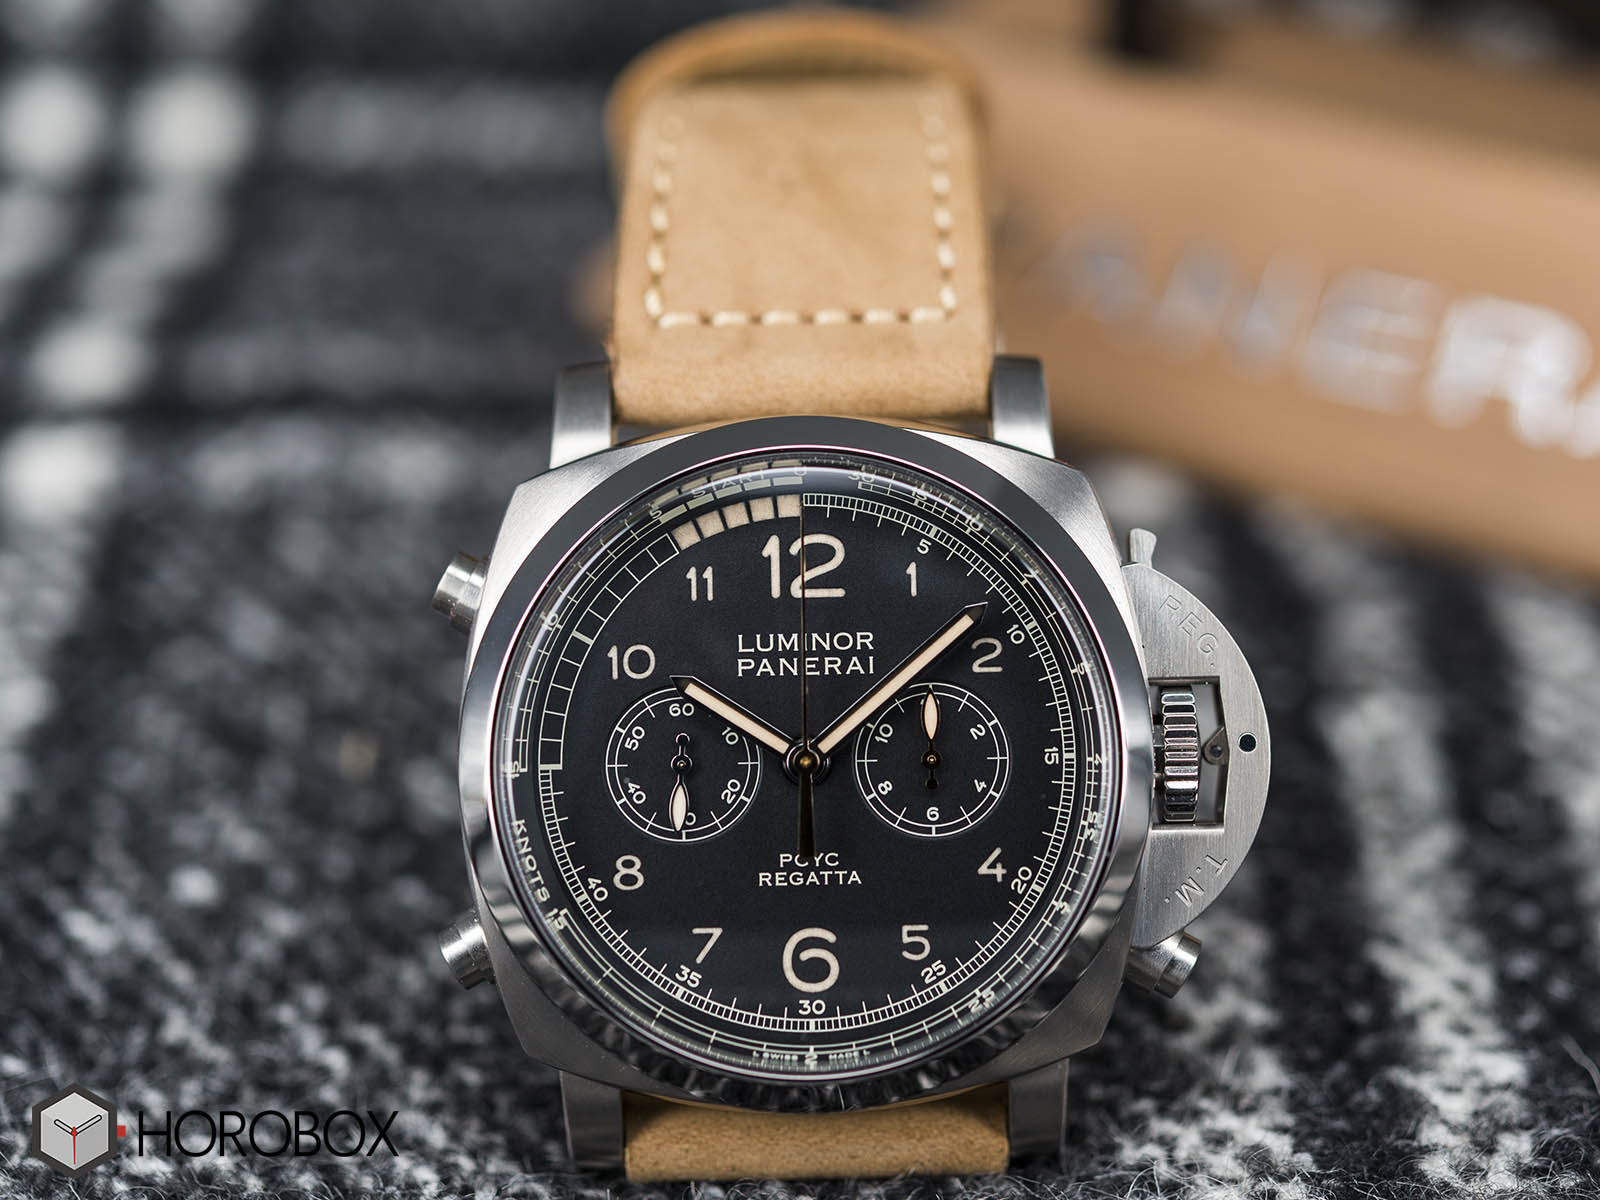 panerai-luminor-1950-pcyc-regatta-pam00652-2.jpg